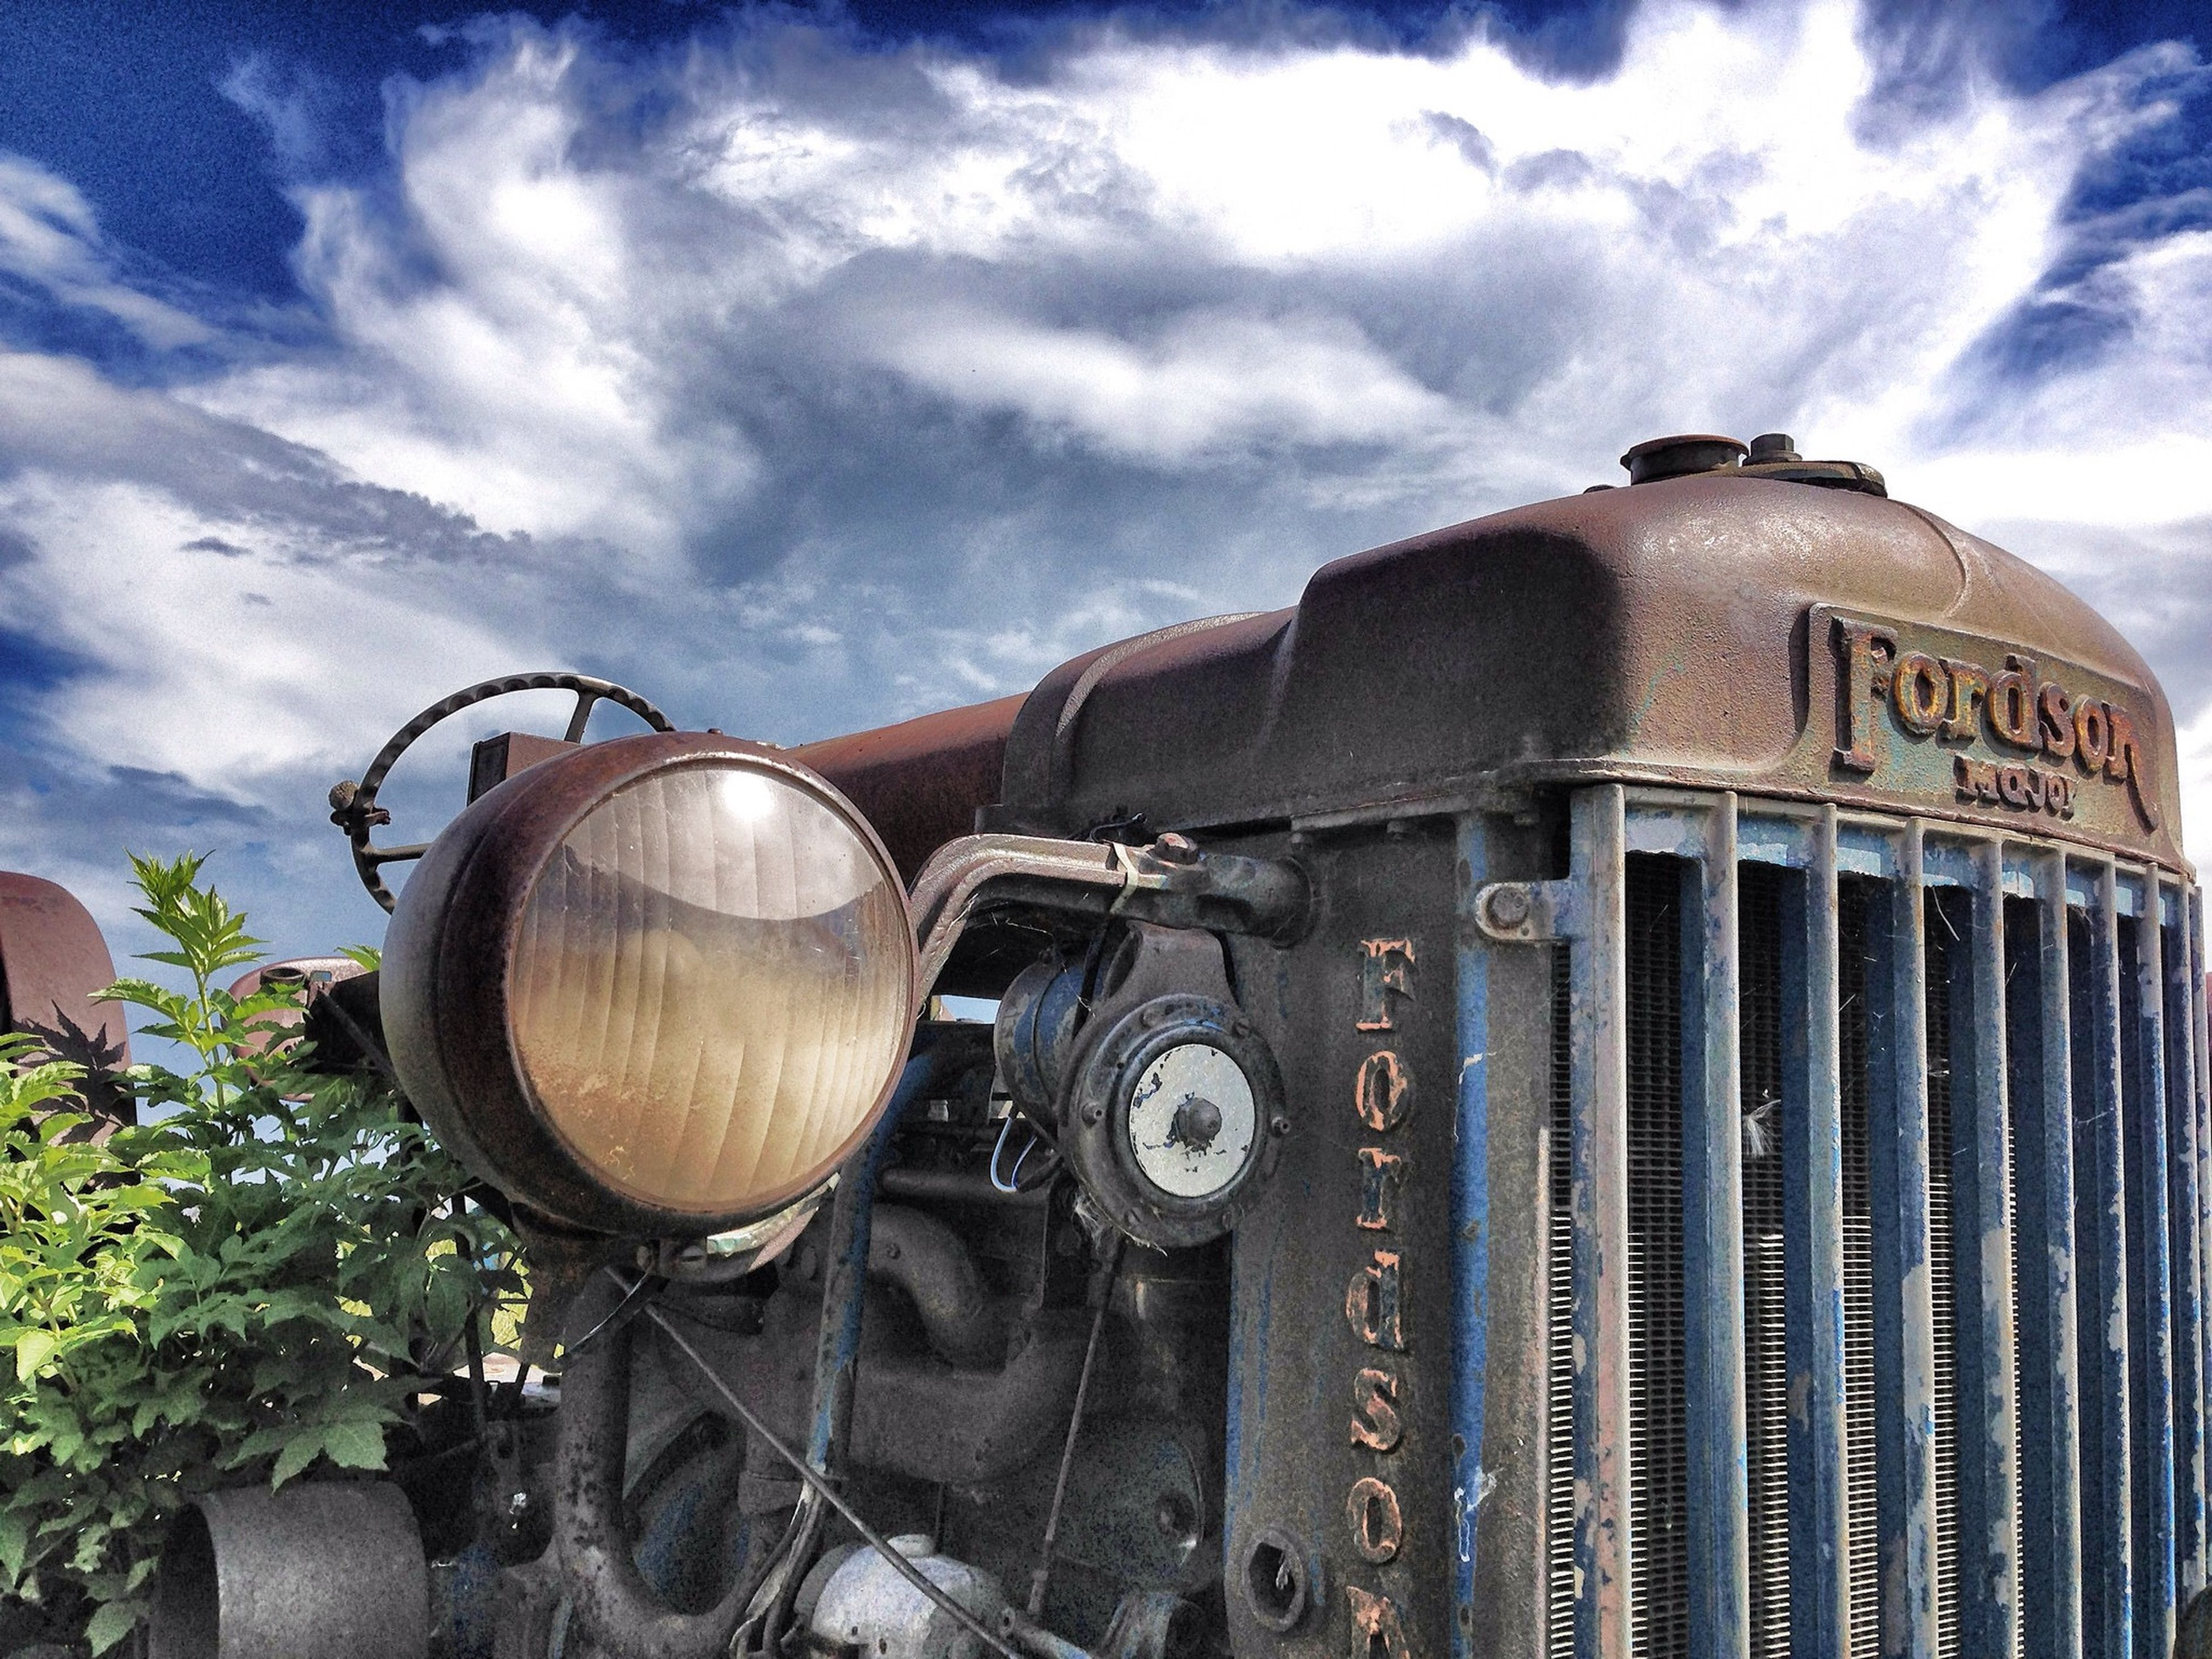 sky, cloud - sky, abandoned, obsolete, old, cloudy, cloud, transportation, rusty, building exterior, built structure, land vehicle, architecture, damaged, deterioration, run-down, old-fashioned, mode of transport, metal, day